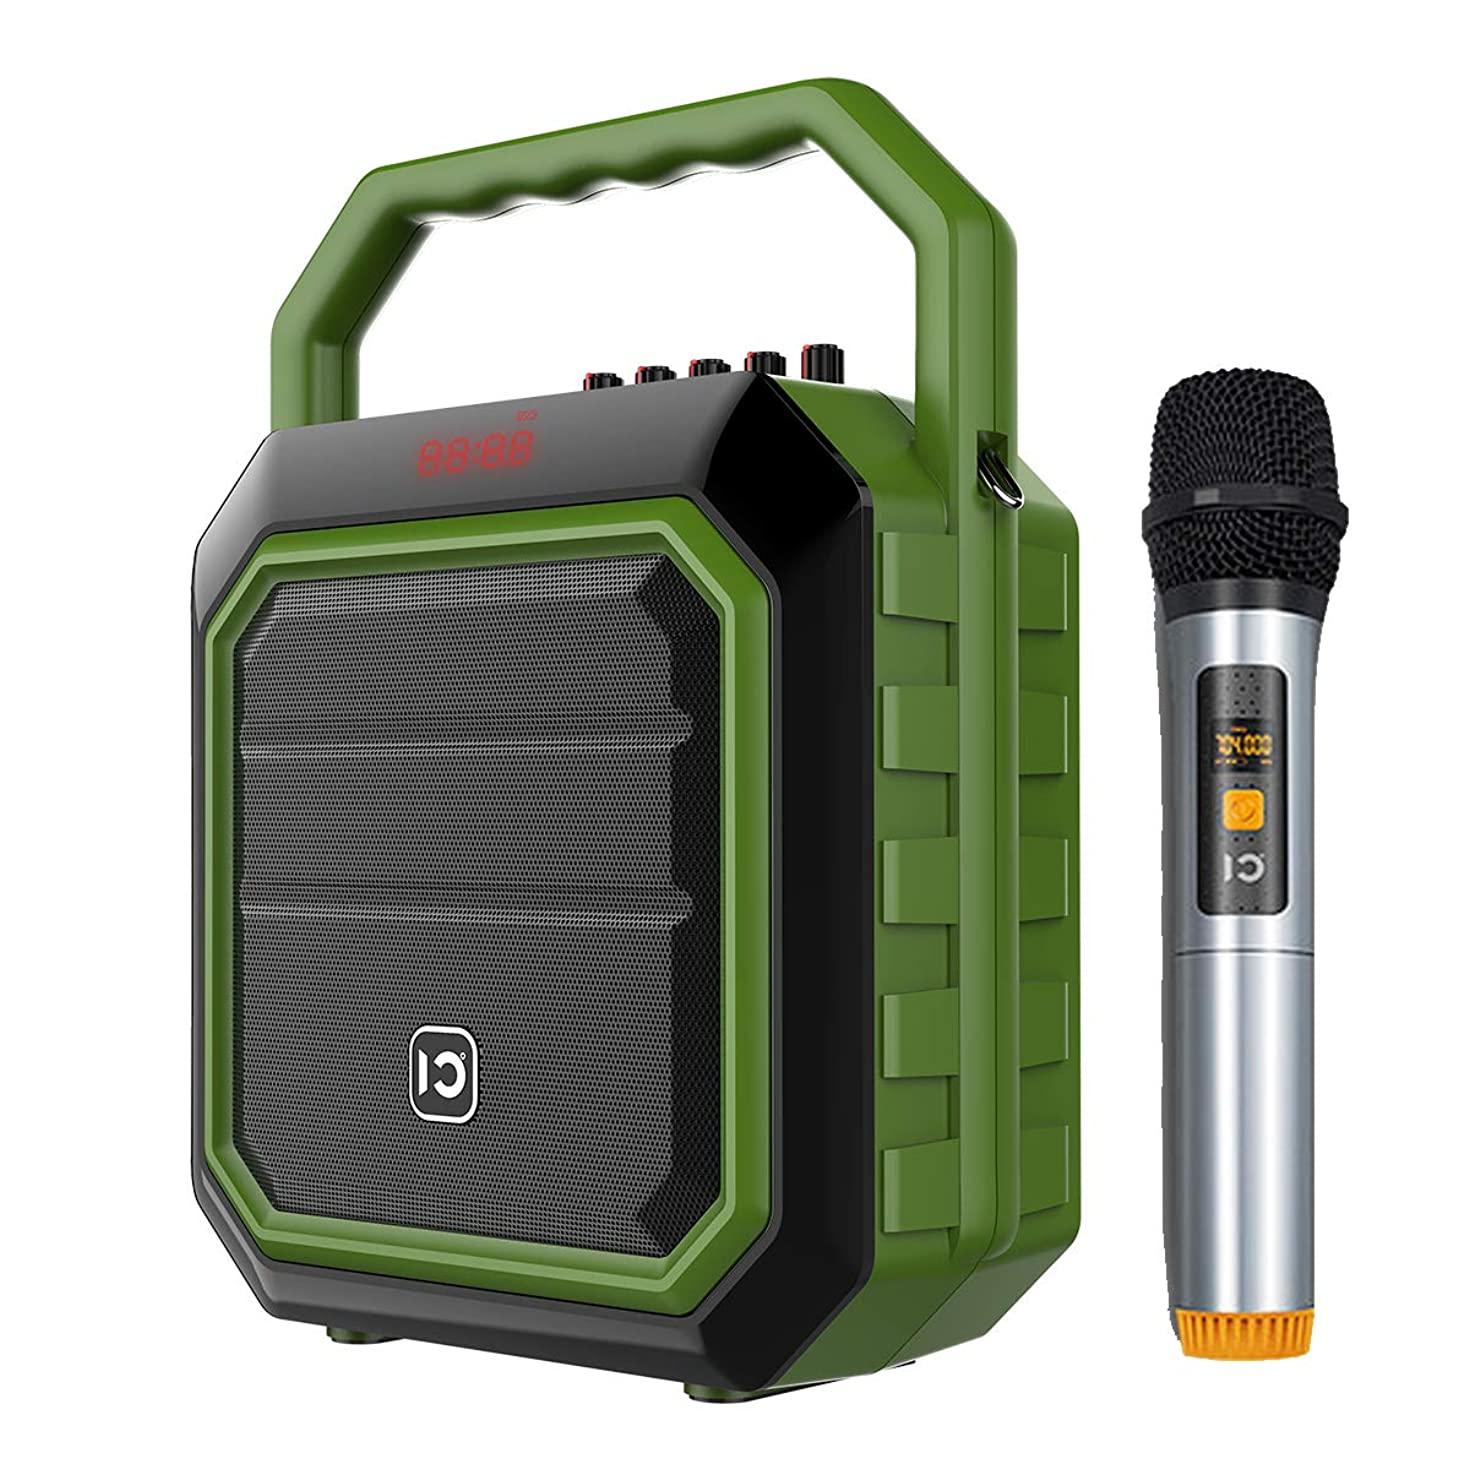 Wireless Portable PA Speaker System - 30W Bluetooth Voice Amplifier Rechargeable Battery Powered Outdoor Sound Stereo Speaker Microphone Set, Support USB/AUX Input/SD/MP3/FM/Record ect(Wireless Green)